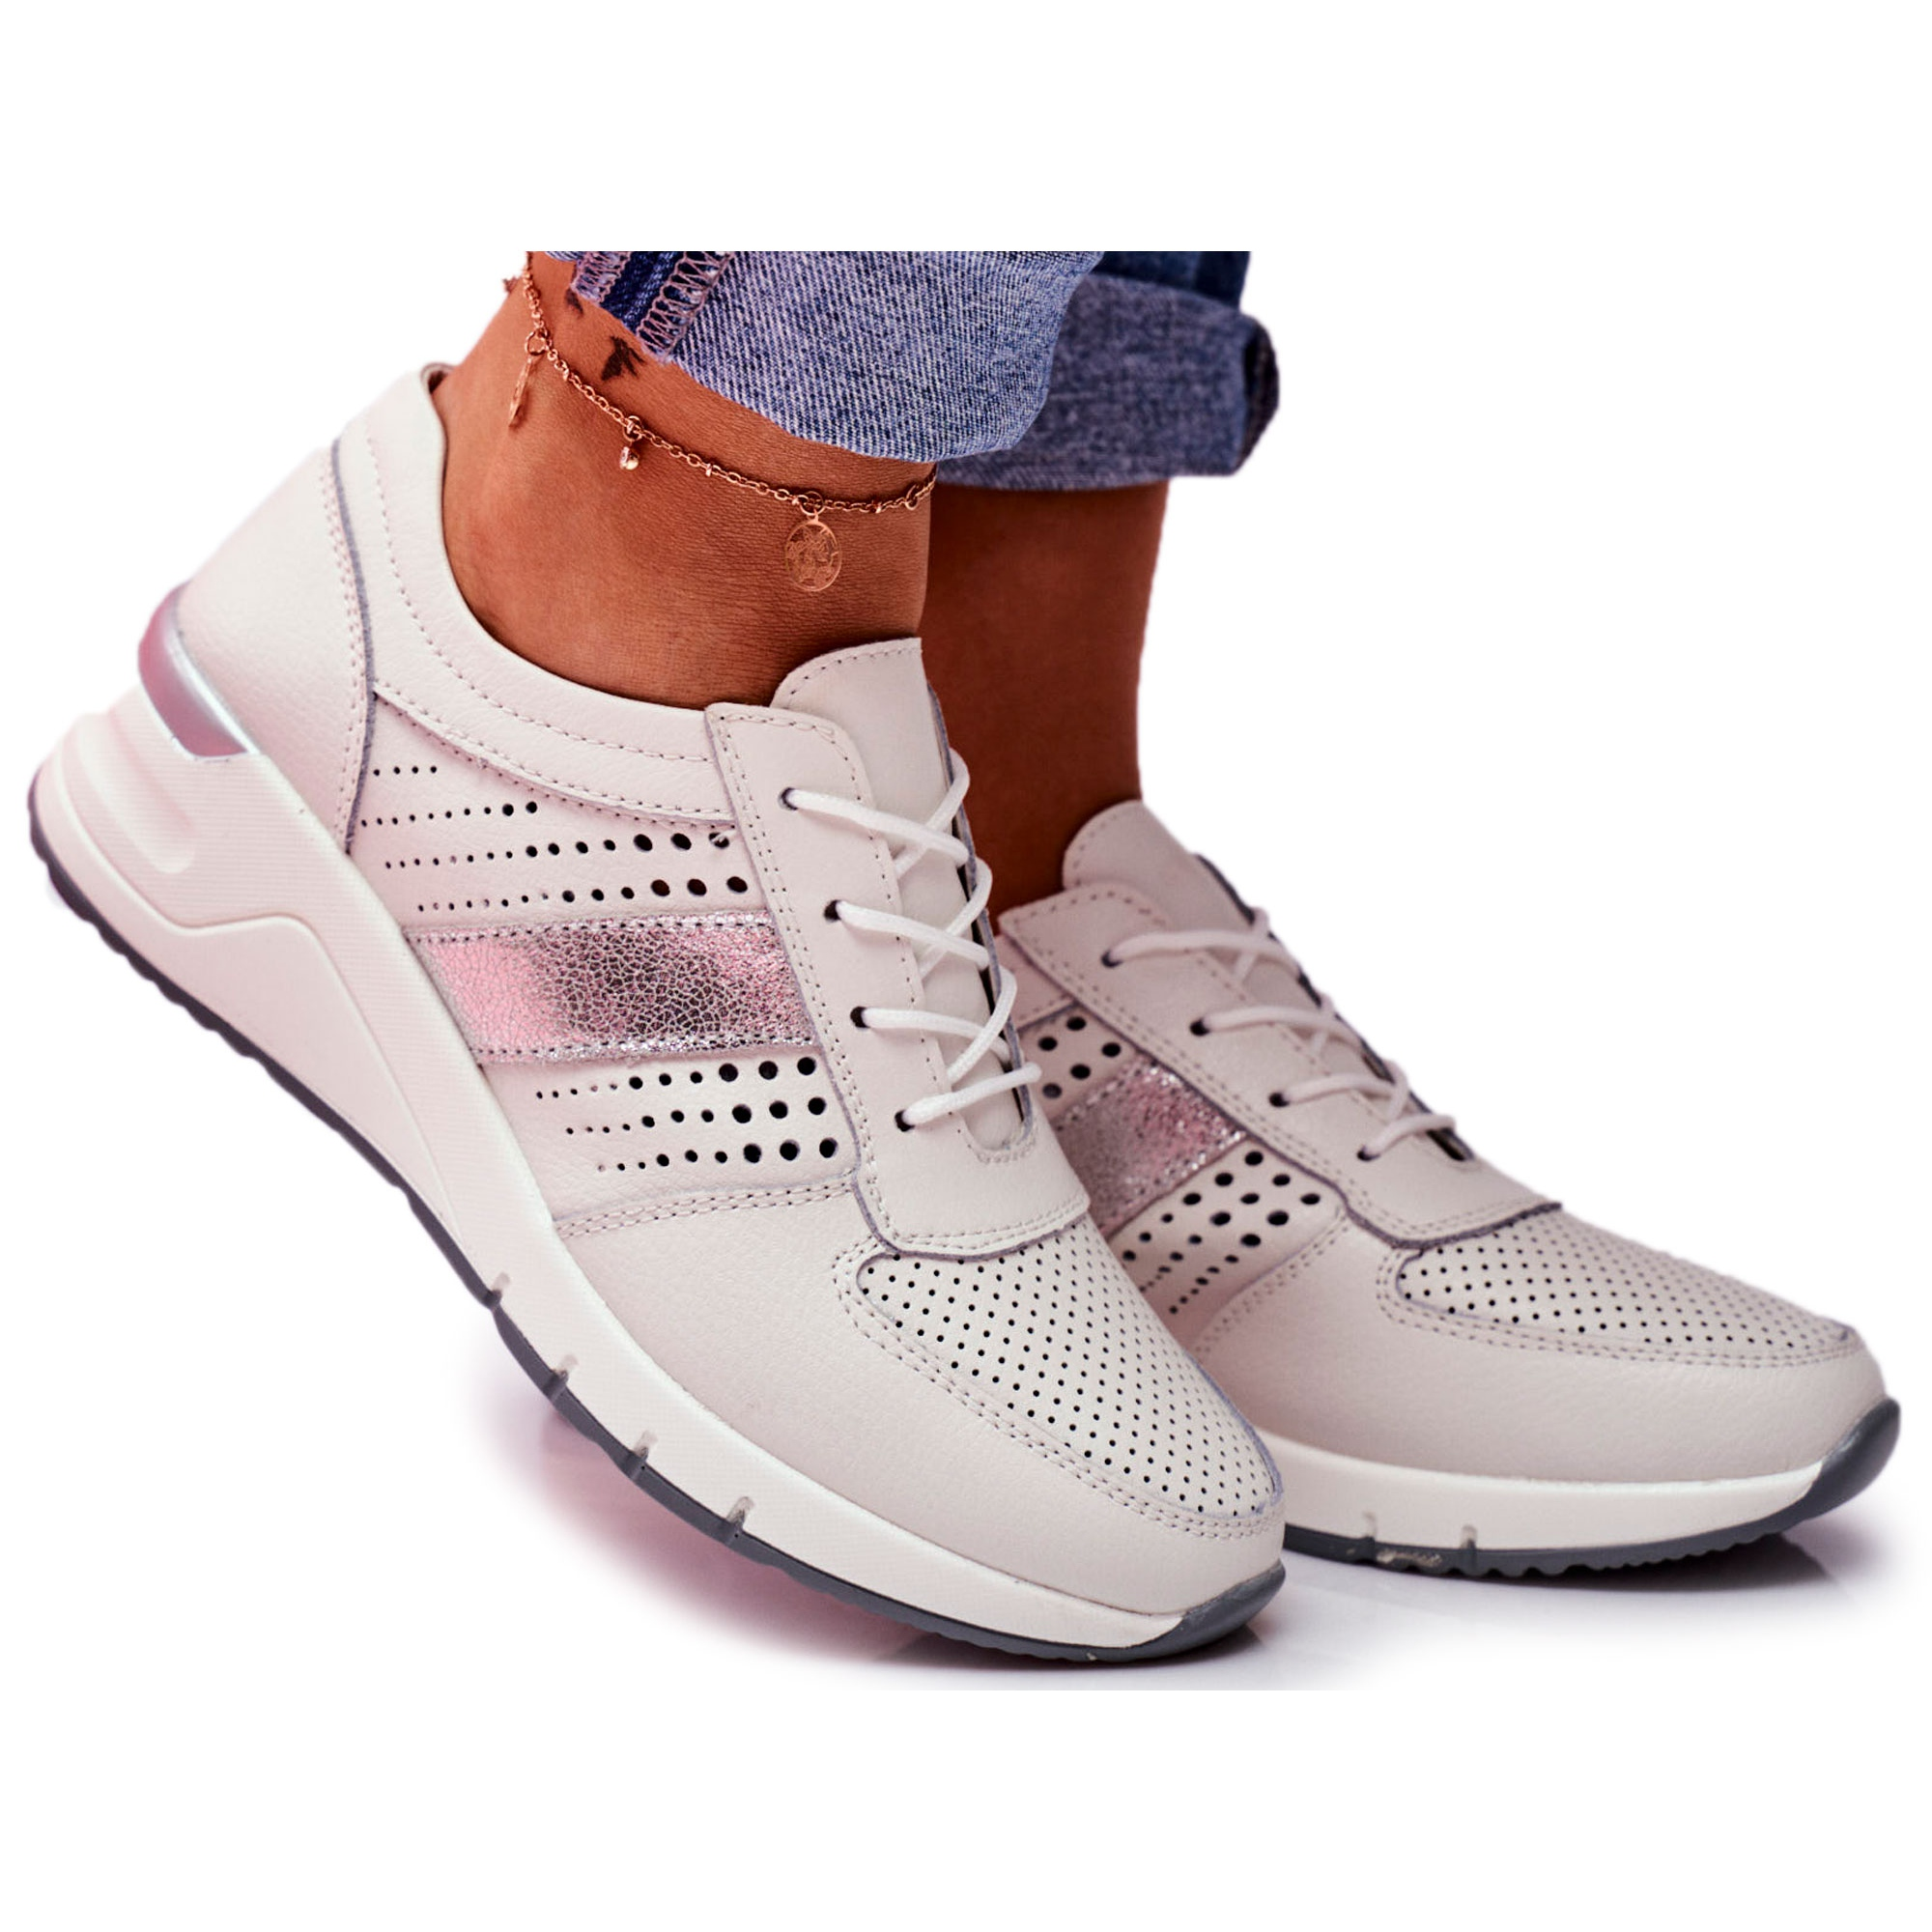 EVE Sport Women's Leather Shoes White